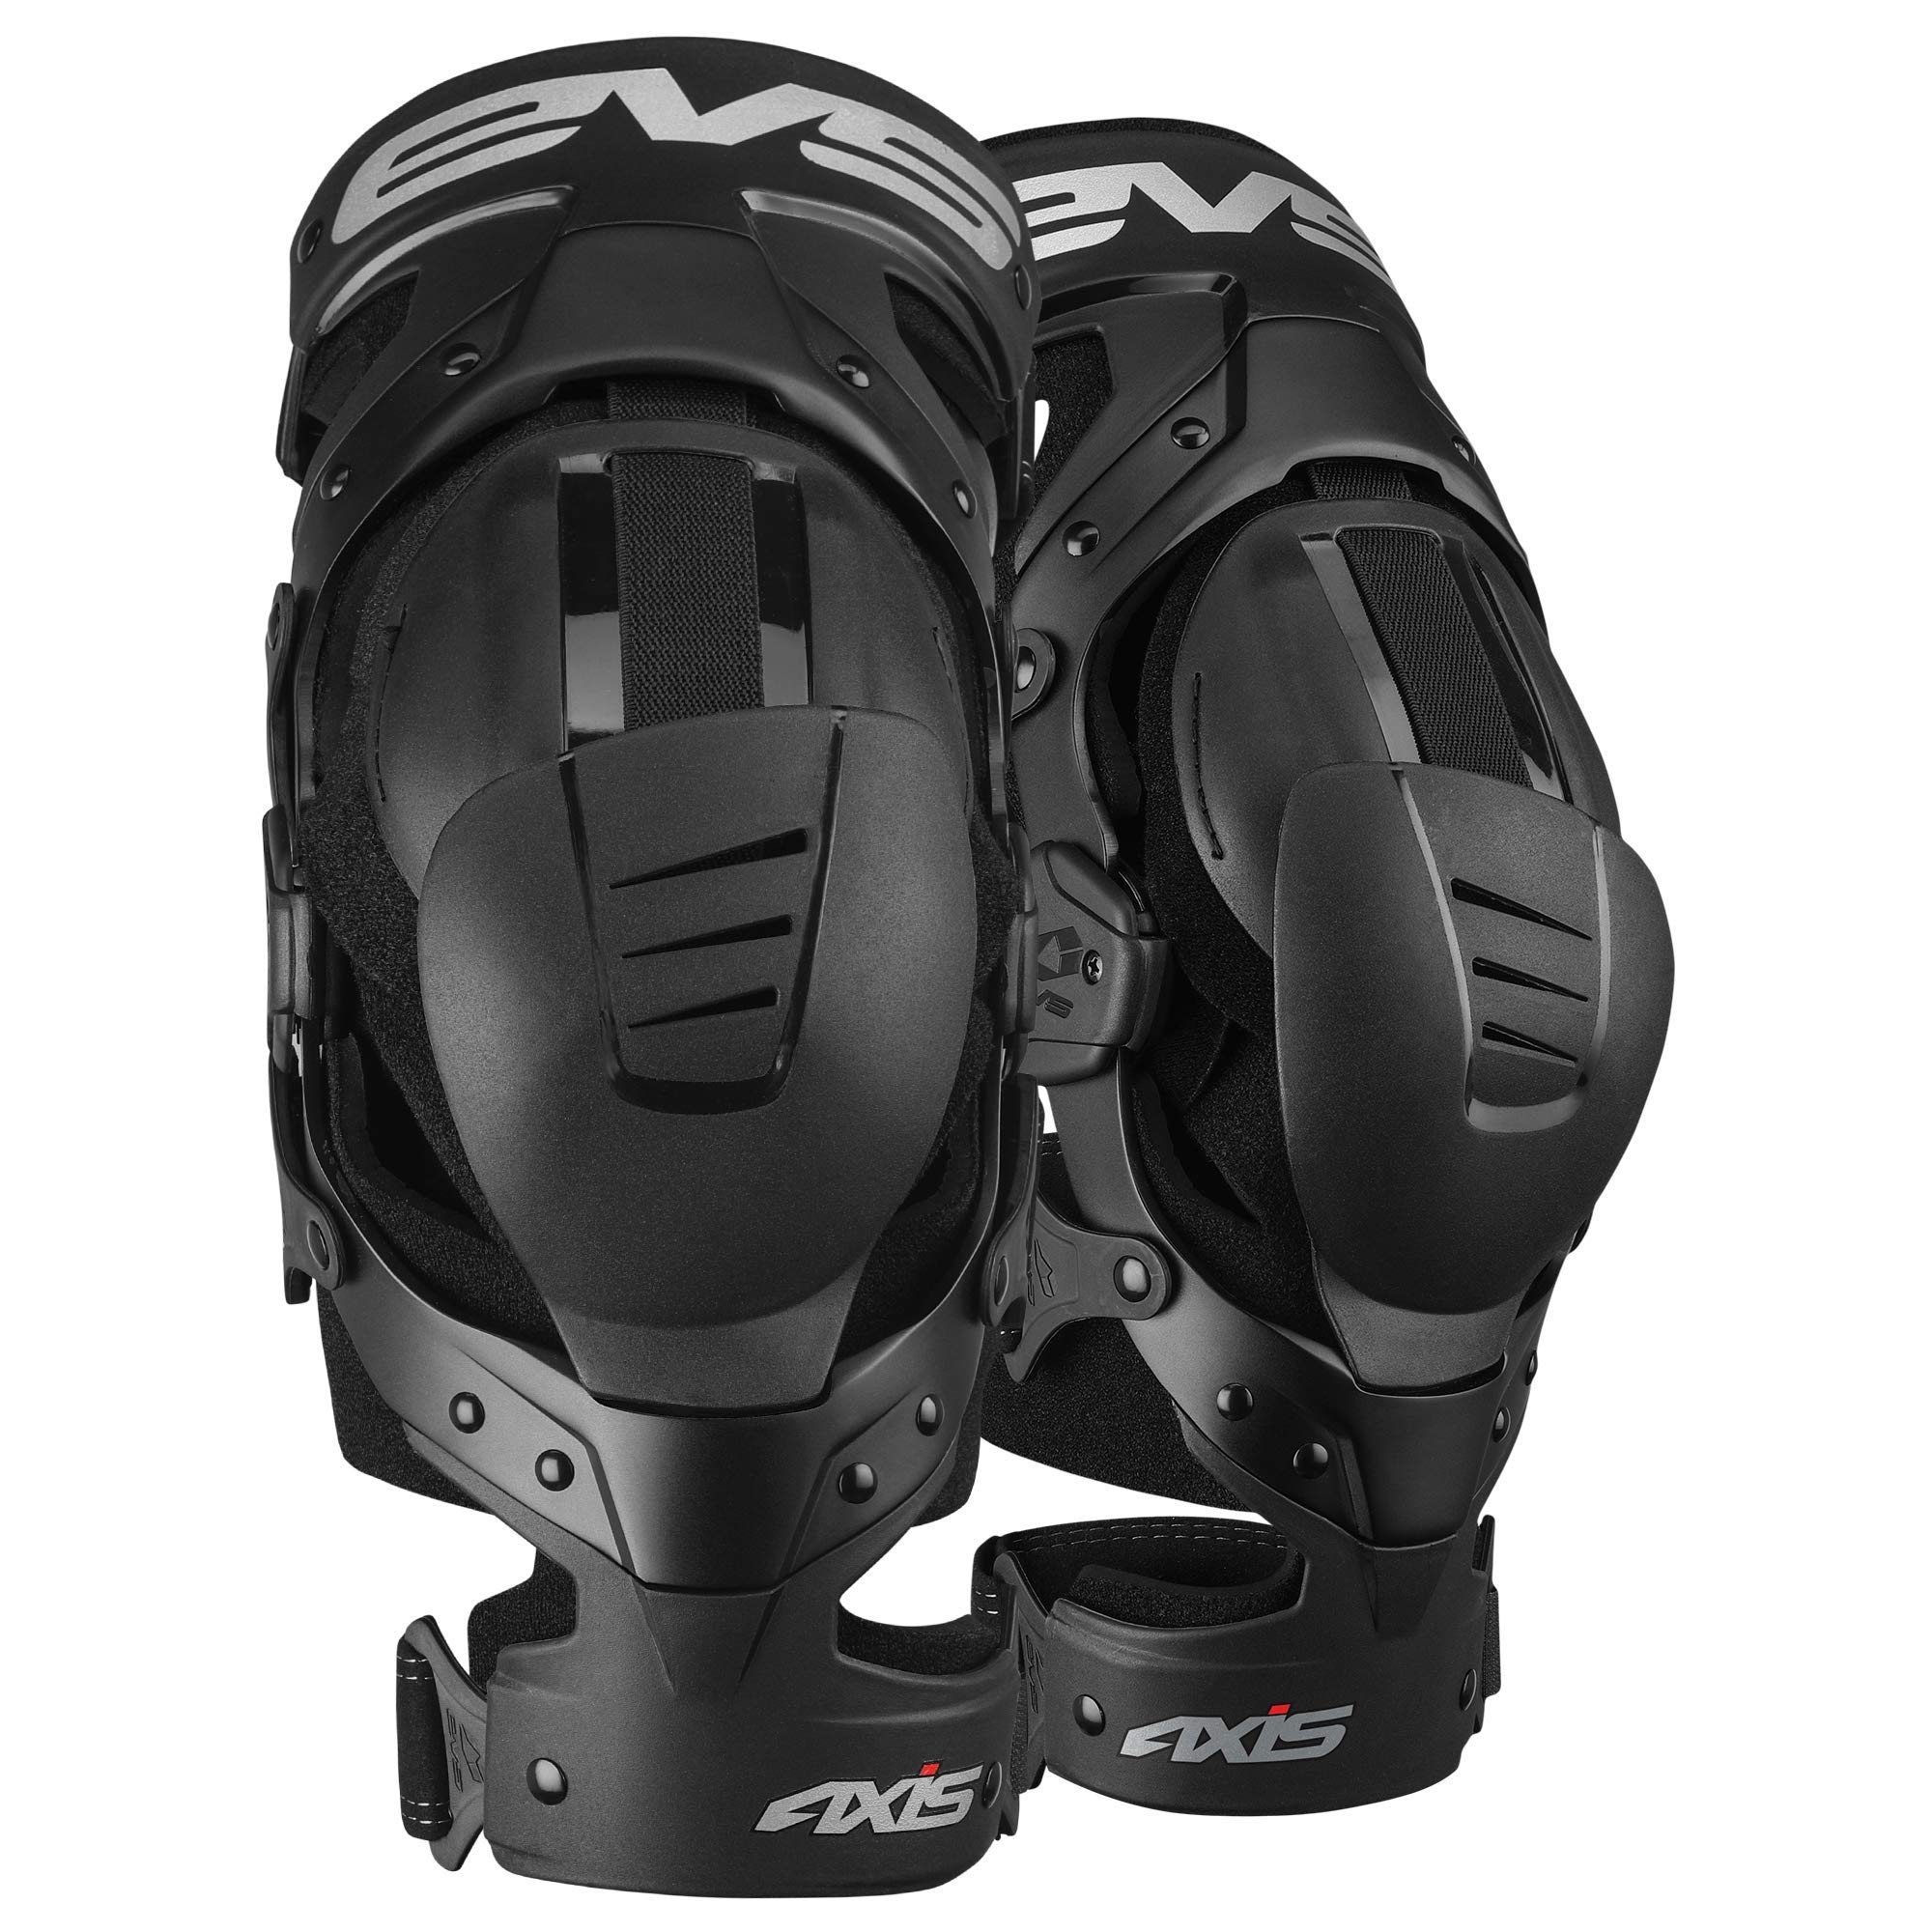 EVS Sports Unisex-Adult Axis Sport Knee Brace - Pair (Black, Large, 2 Pack